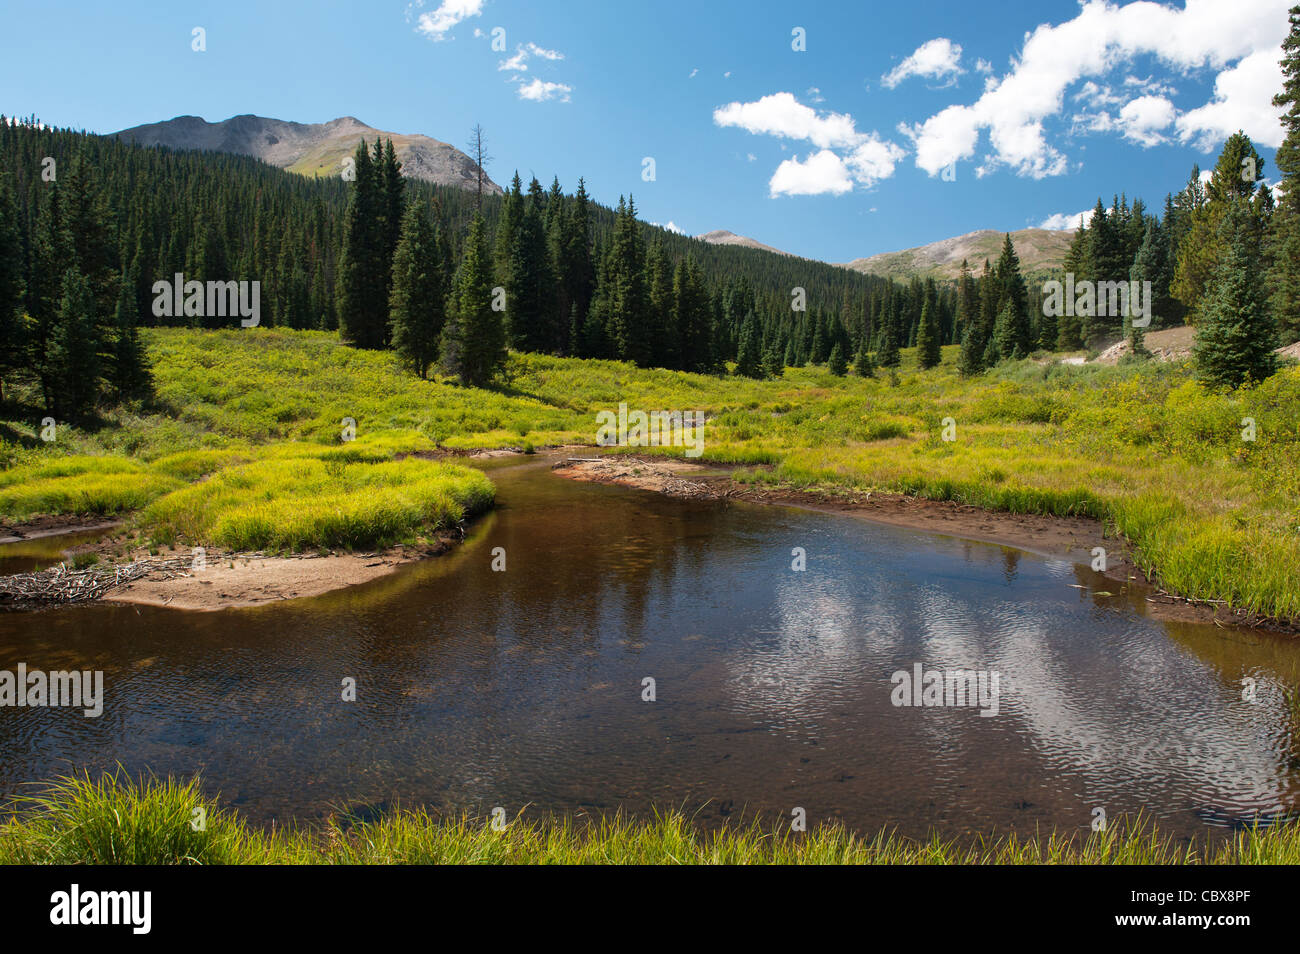 Chalk Creek along the four-wheel-drive Tincup Pass road, Chaffee County, Colorado - Stock Image